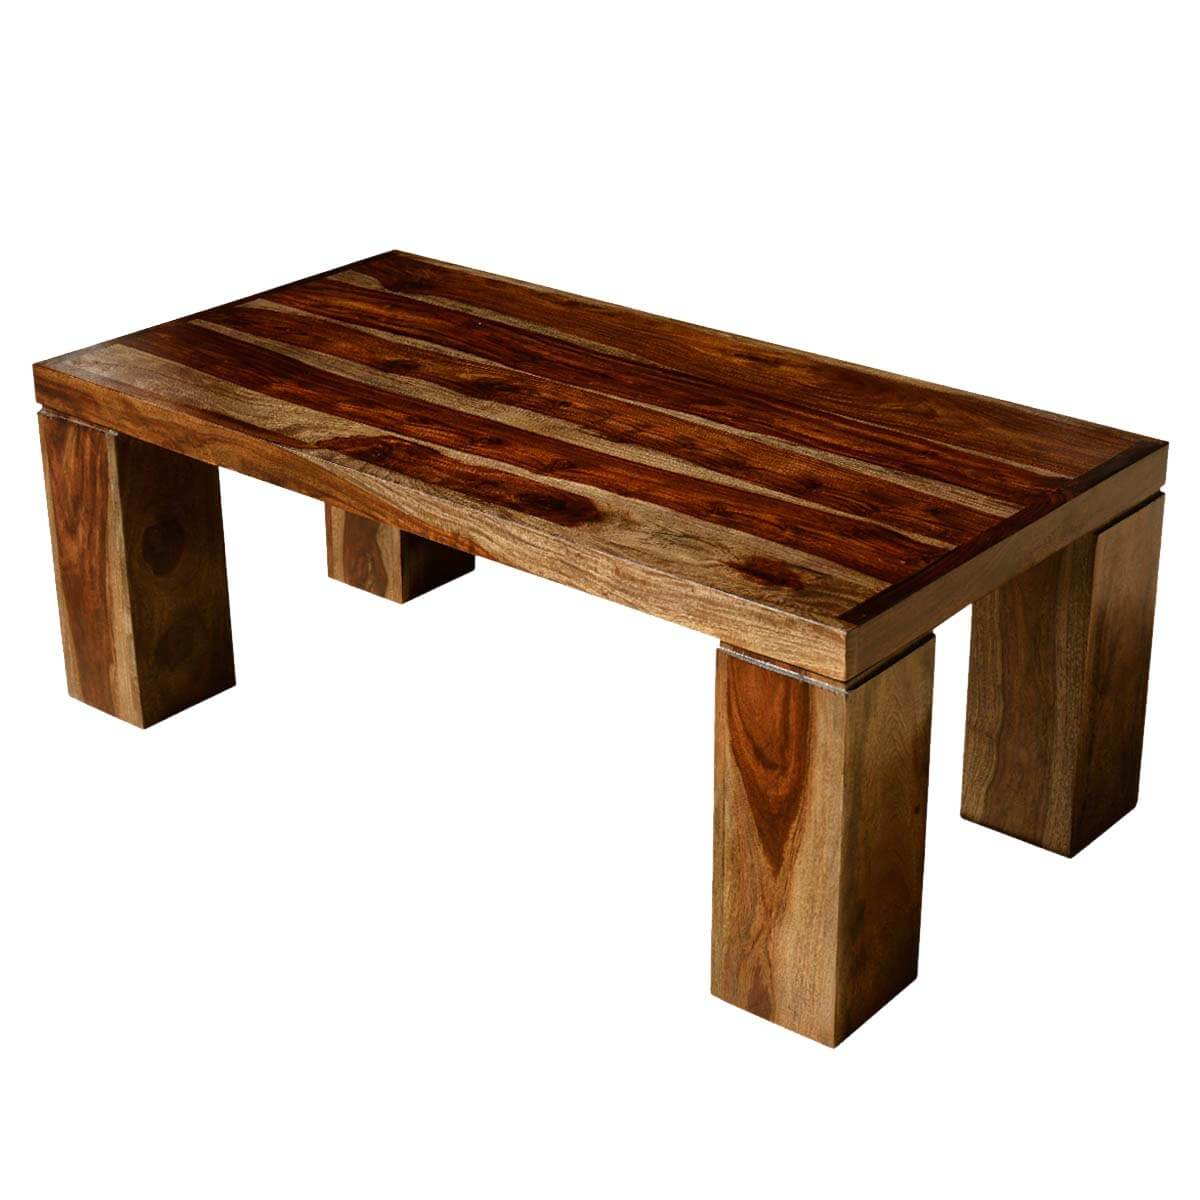 Contemporary Indian Rosewood Espresso Coffee Table w Block Legs